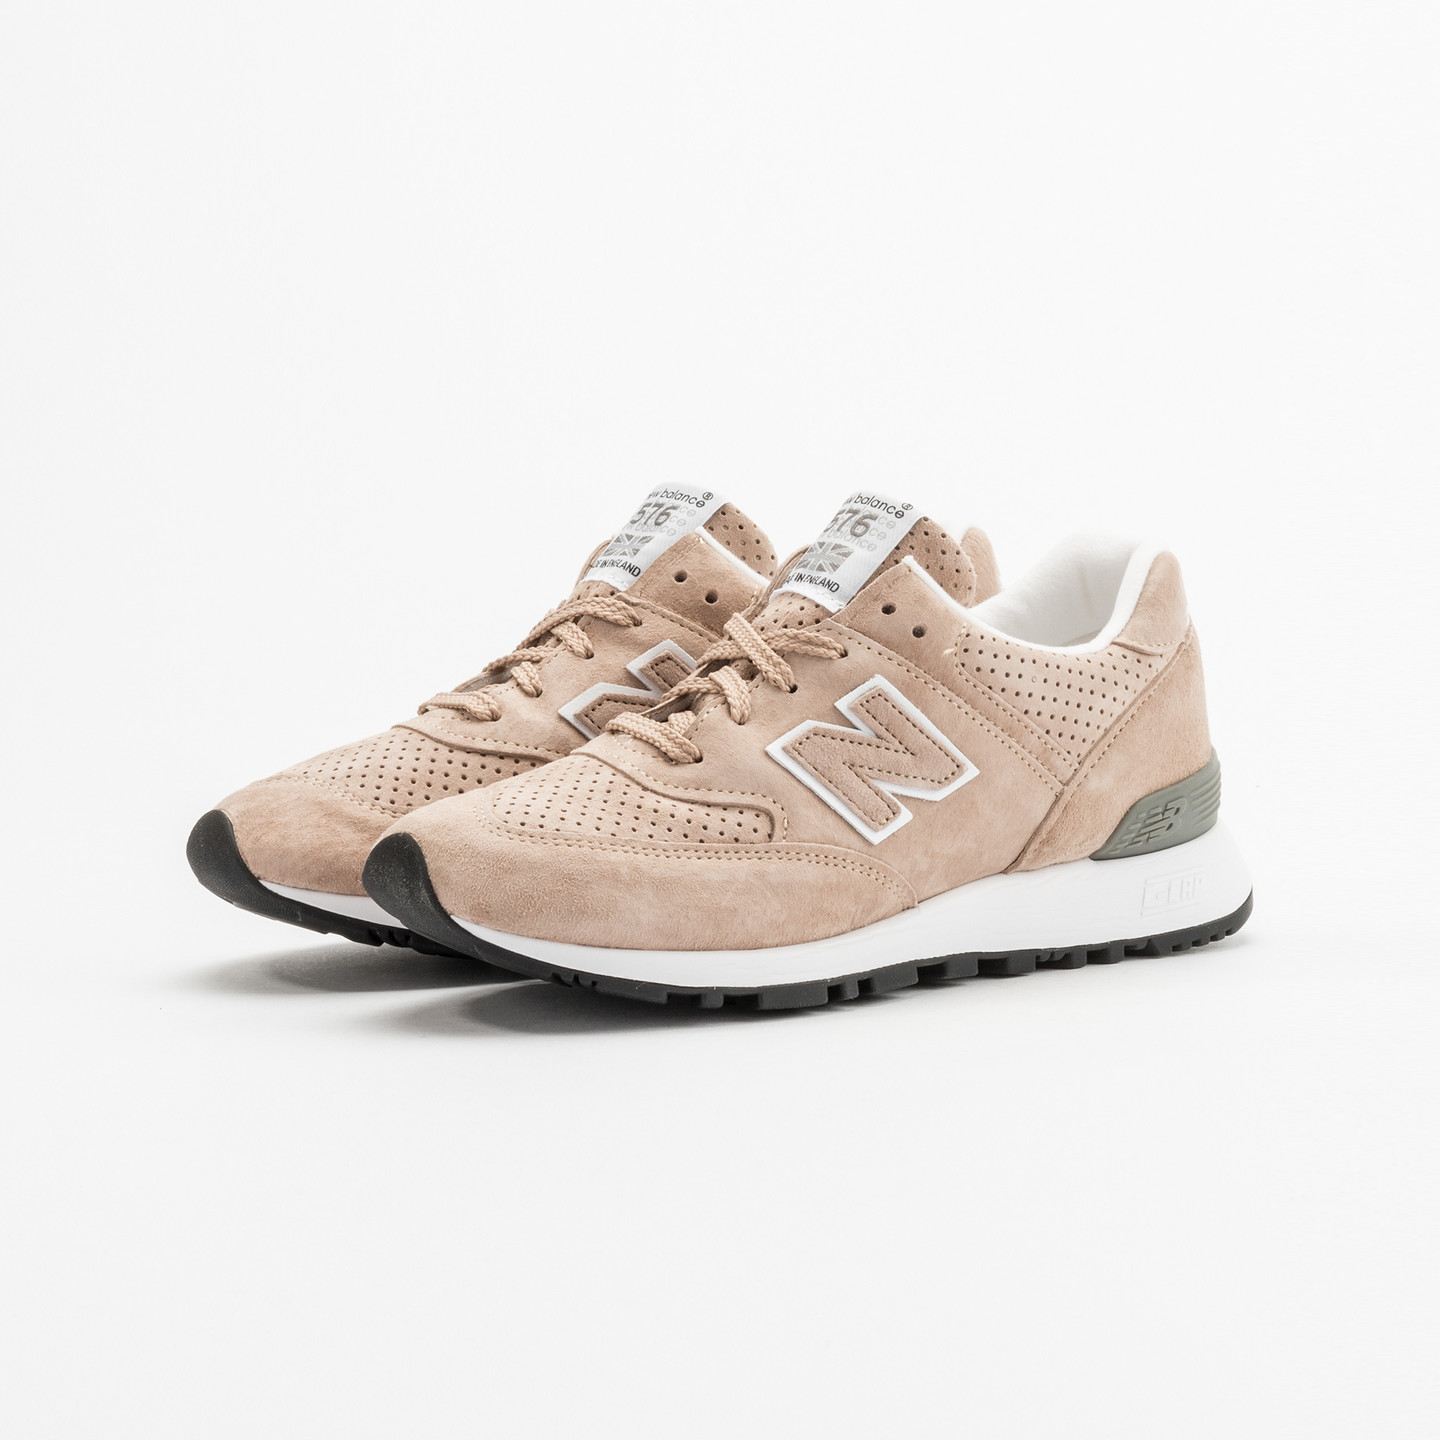 New Balance W576 TTO - Made in UK Light Brown / White W576TTO-36.5